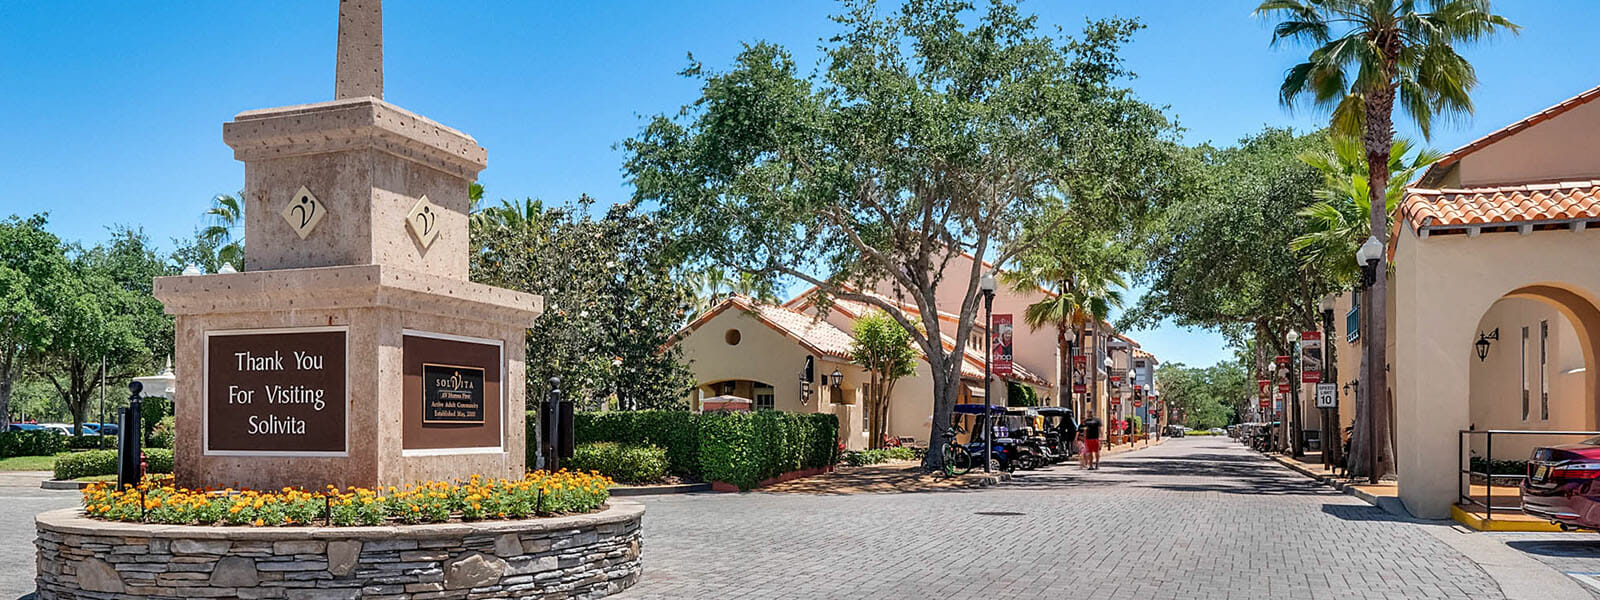 Active 55+ Community near Orlando FL | Solivita | Realty